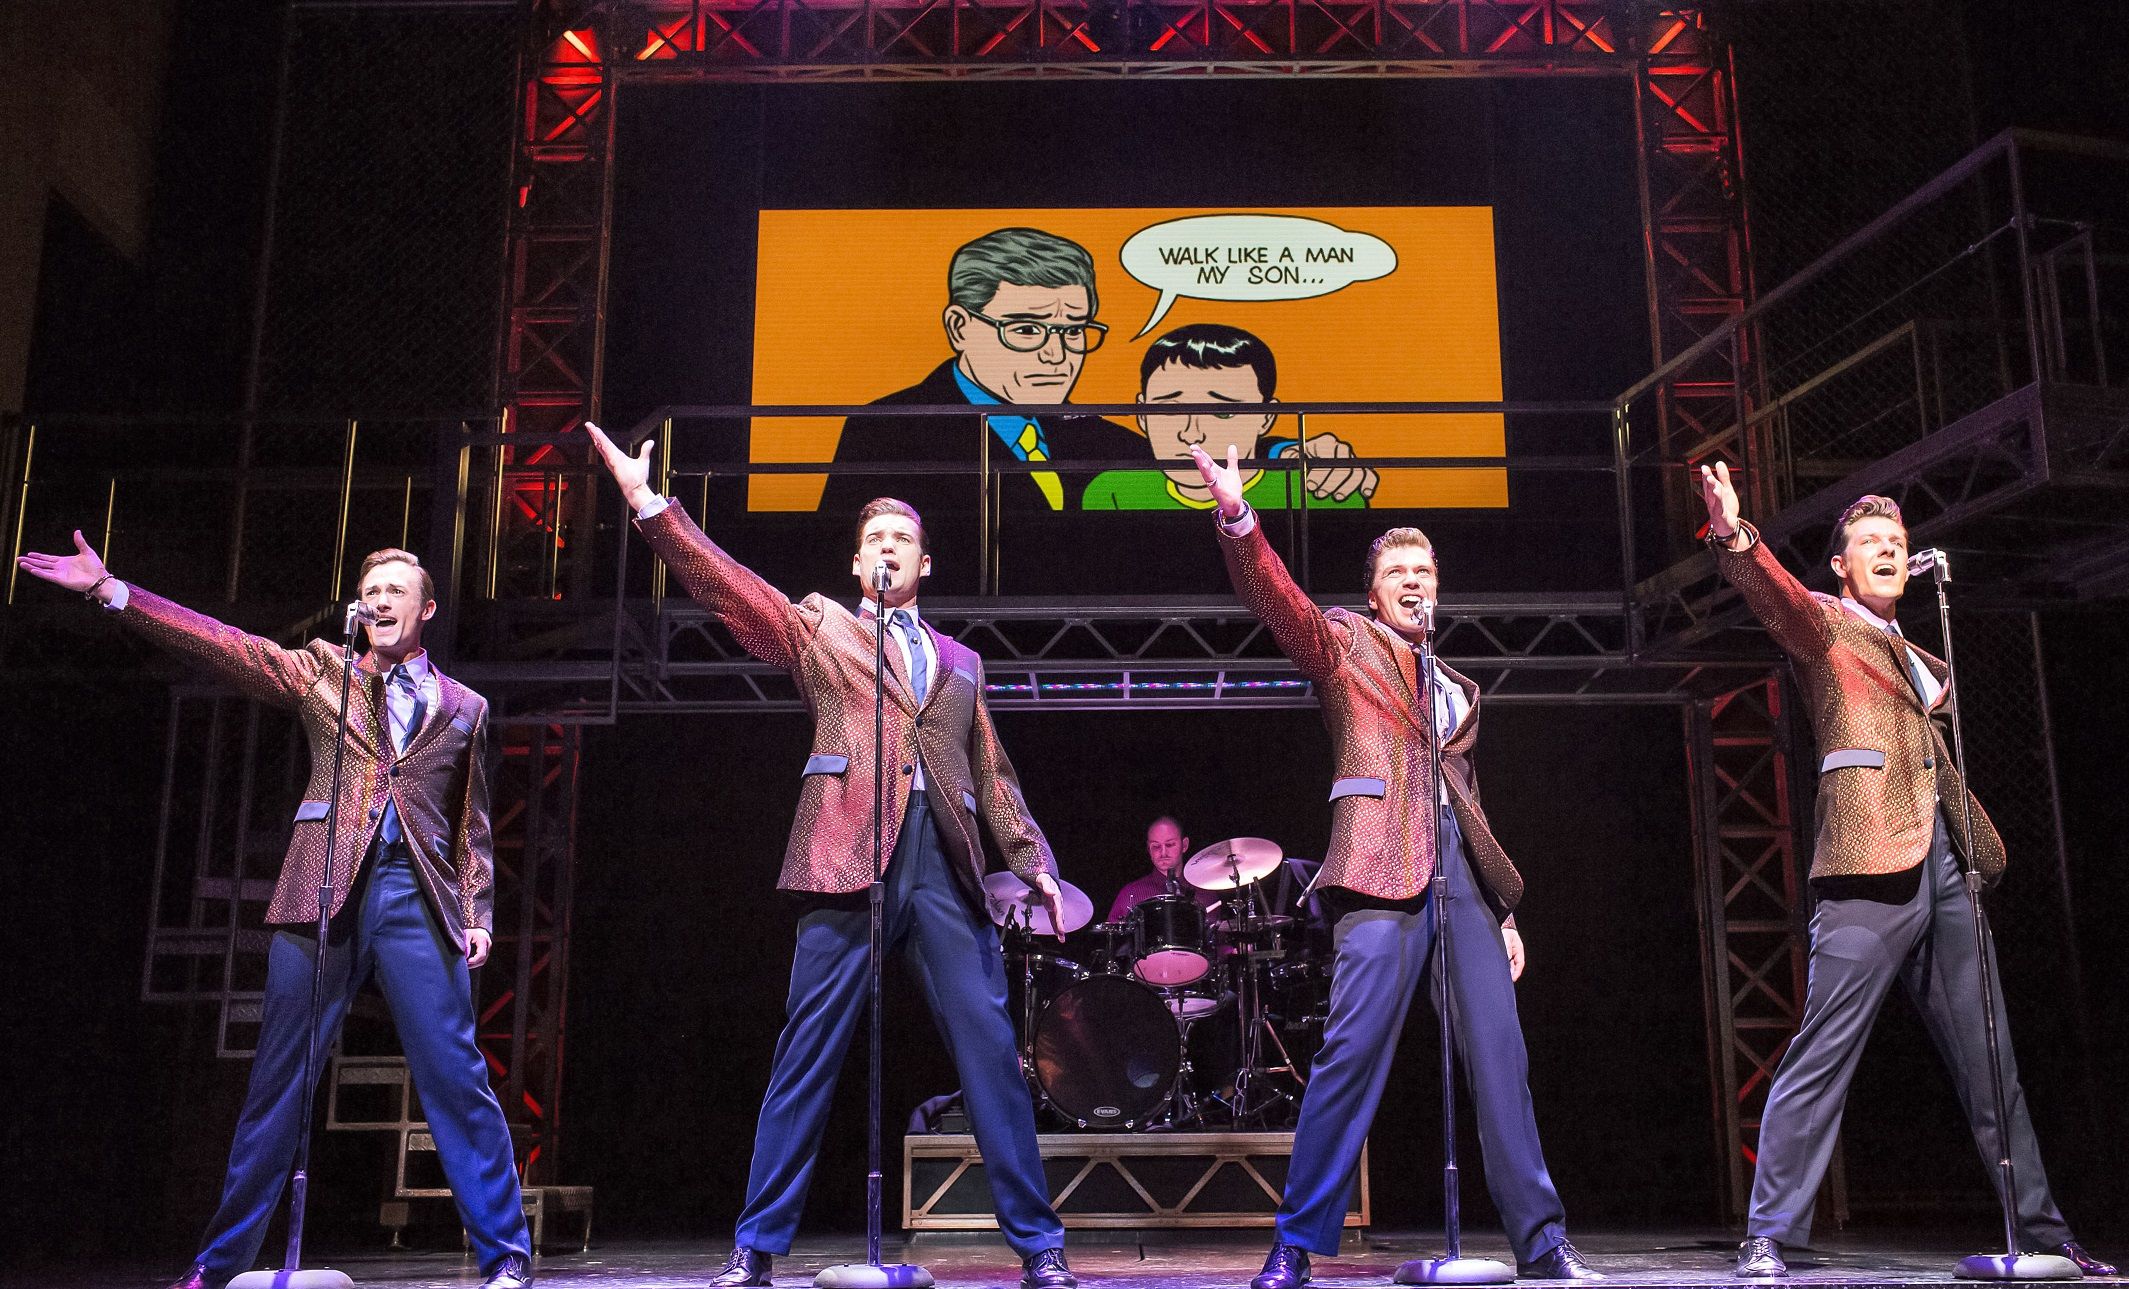 jersey boys milton keynes theatre what 39 s on. Black Bedroom Furniture Sets. Home Design Ideas